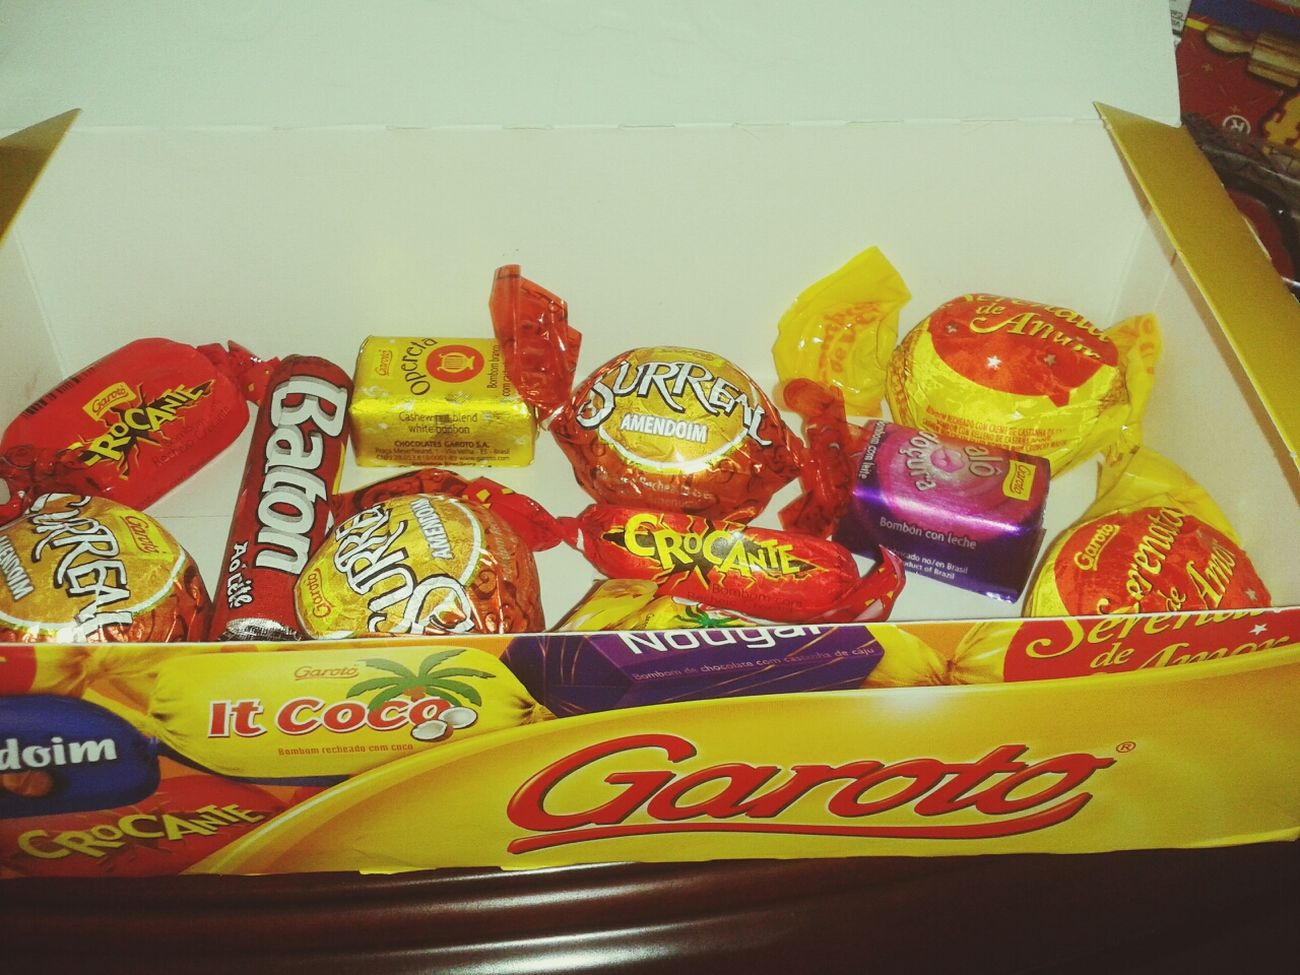 feeling brazillian gessh, say Hi to Garoto Special Brazilian Sweets :D